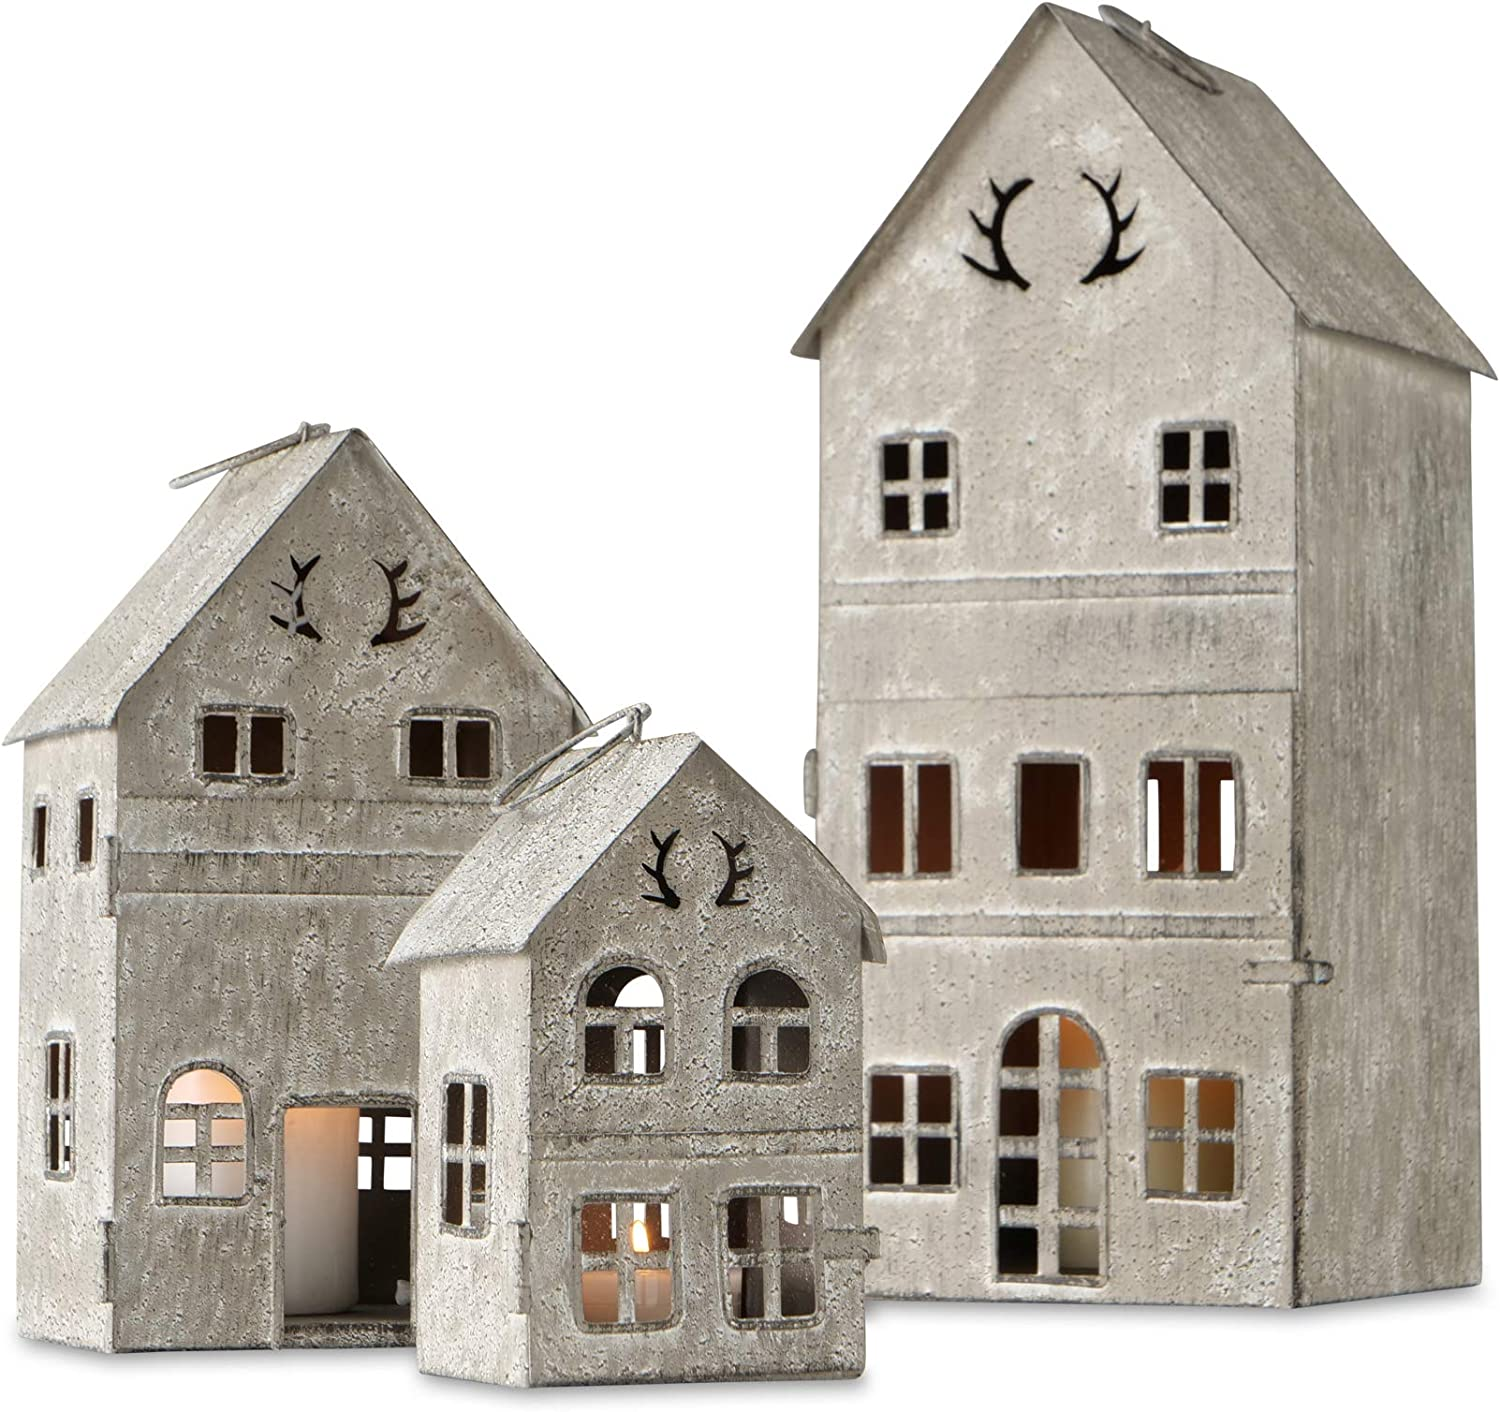 Main Street Town House Candle Lanterns, Set of 3, Vintage Style, Antler Details, Weathered White and Rustic Grey, Metal, Hinged Doors, 13.75, 8.25, and 5.25 Inches Tall